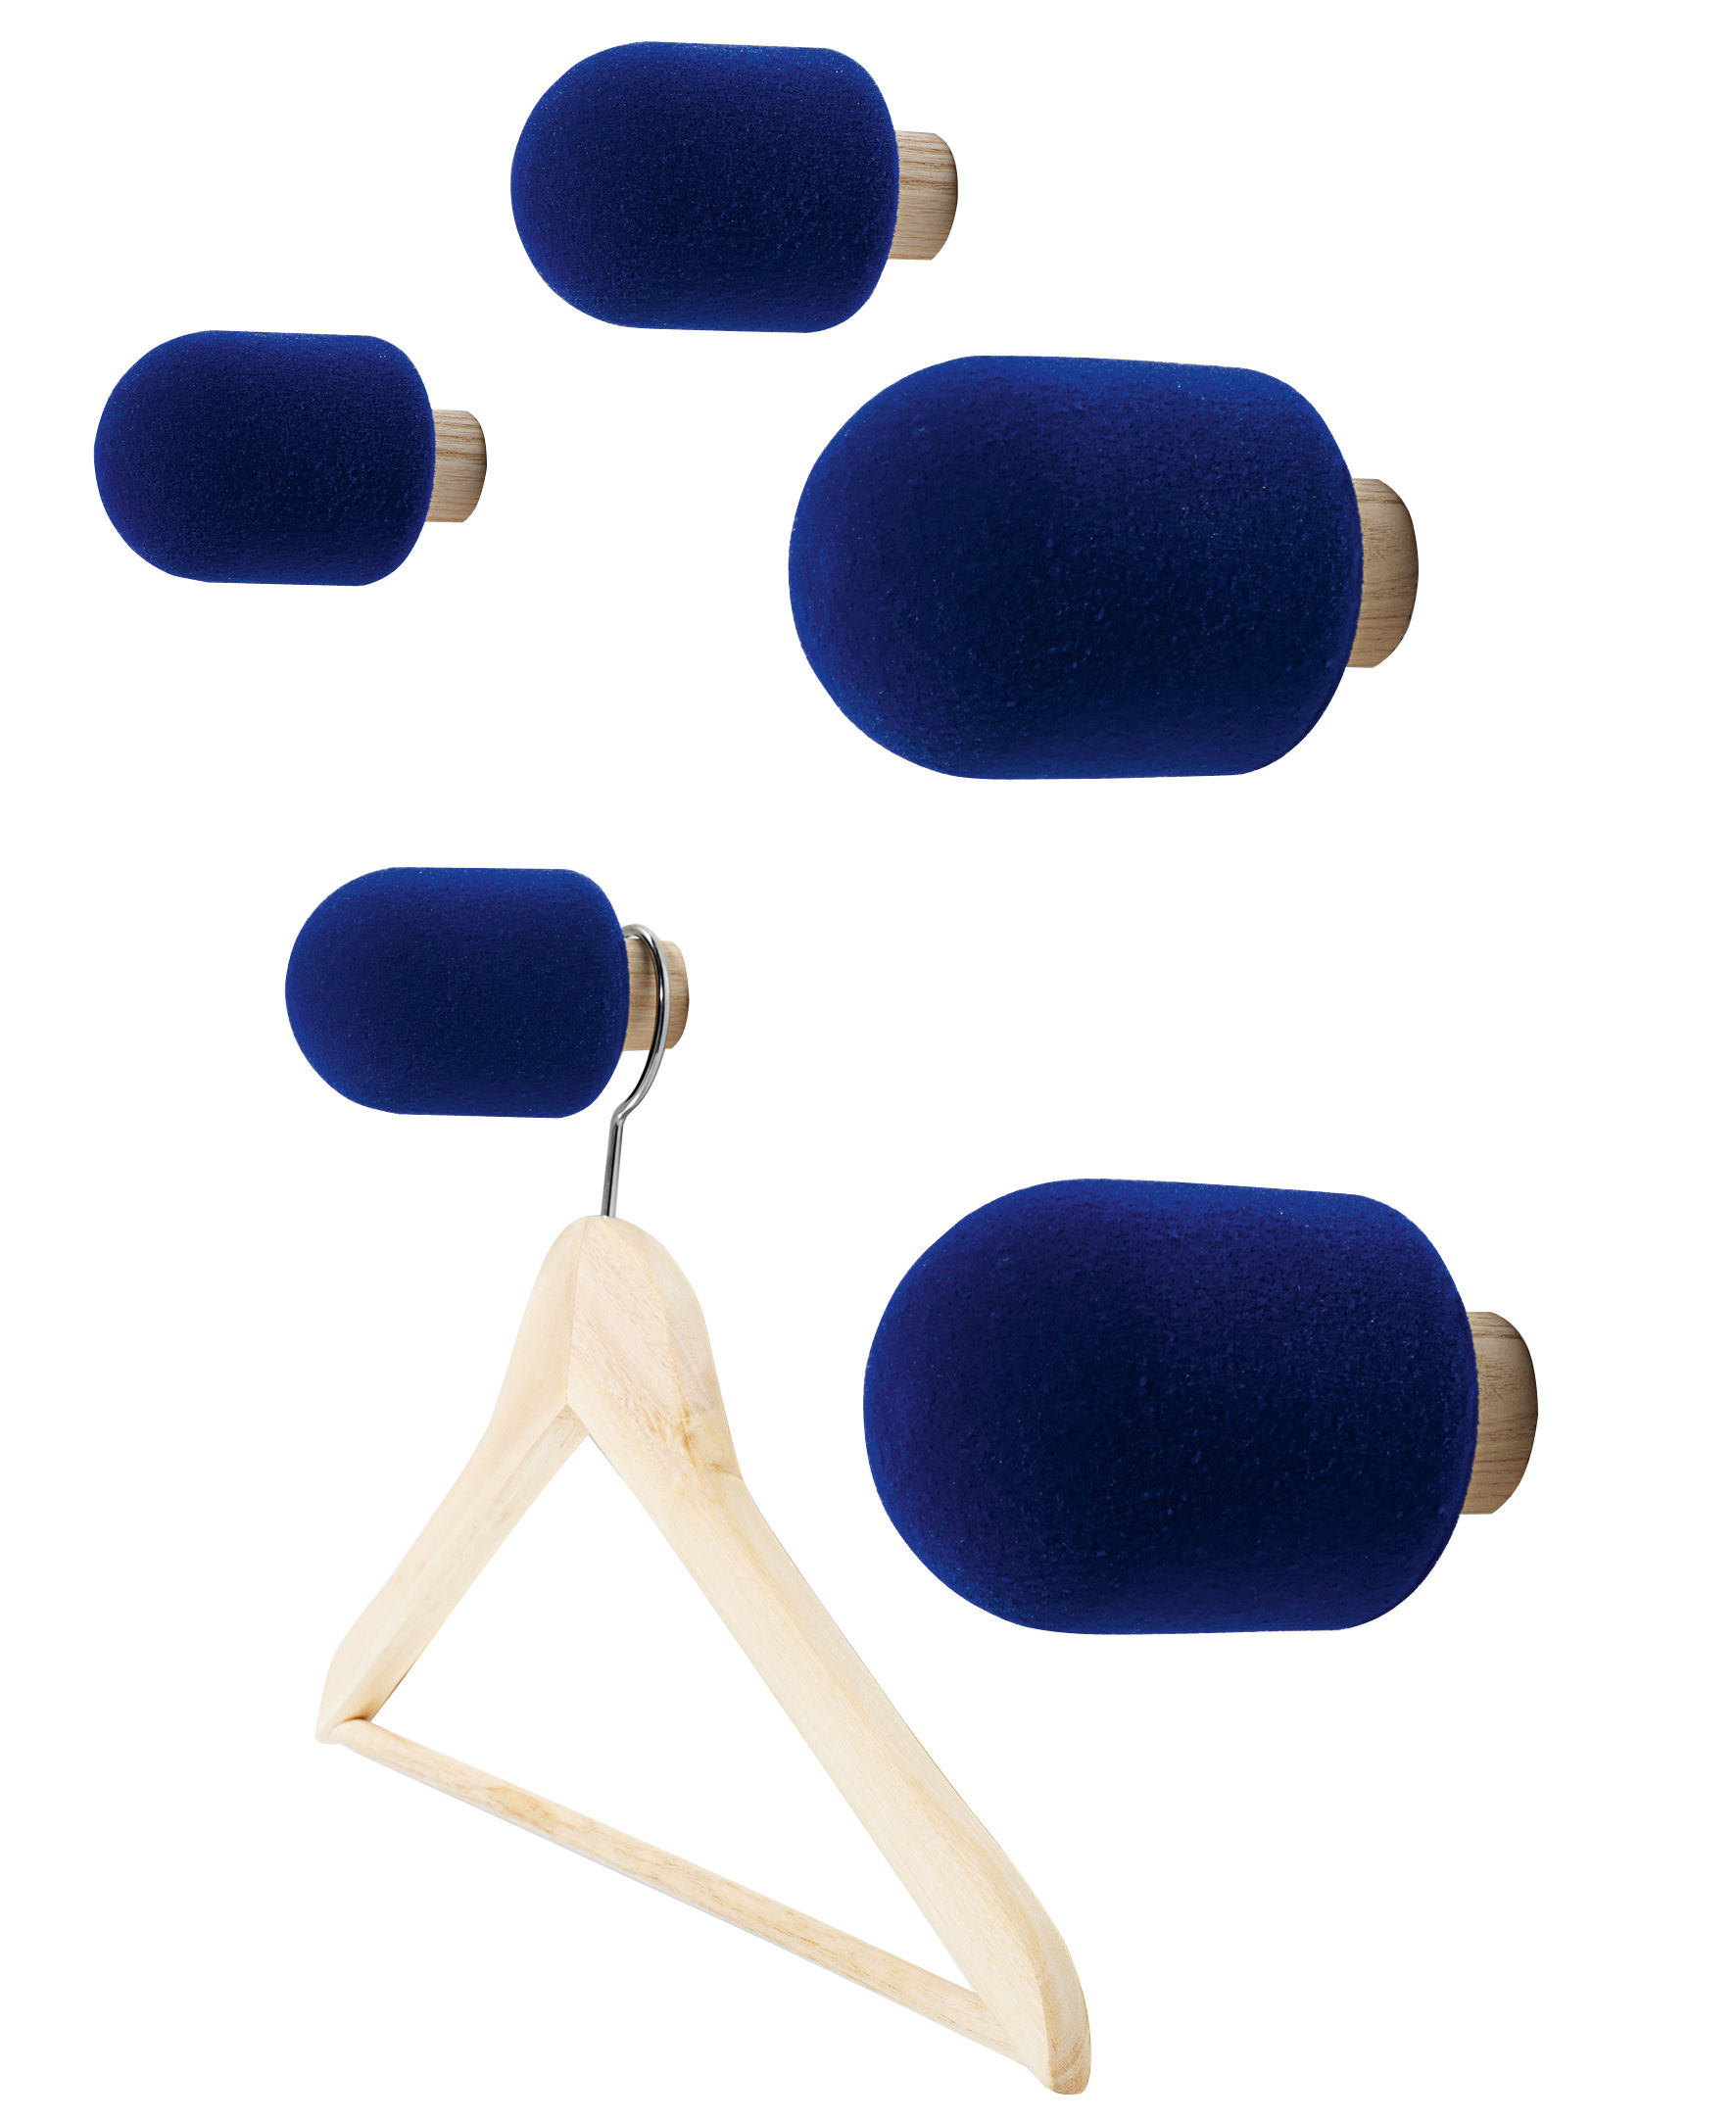 Furniture - Coat Racks & Pegs - Micro Hook - Set of 5 hooks by Moustache - Blue - Ashwood, Flocked Foam